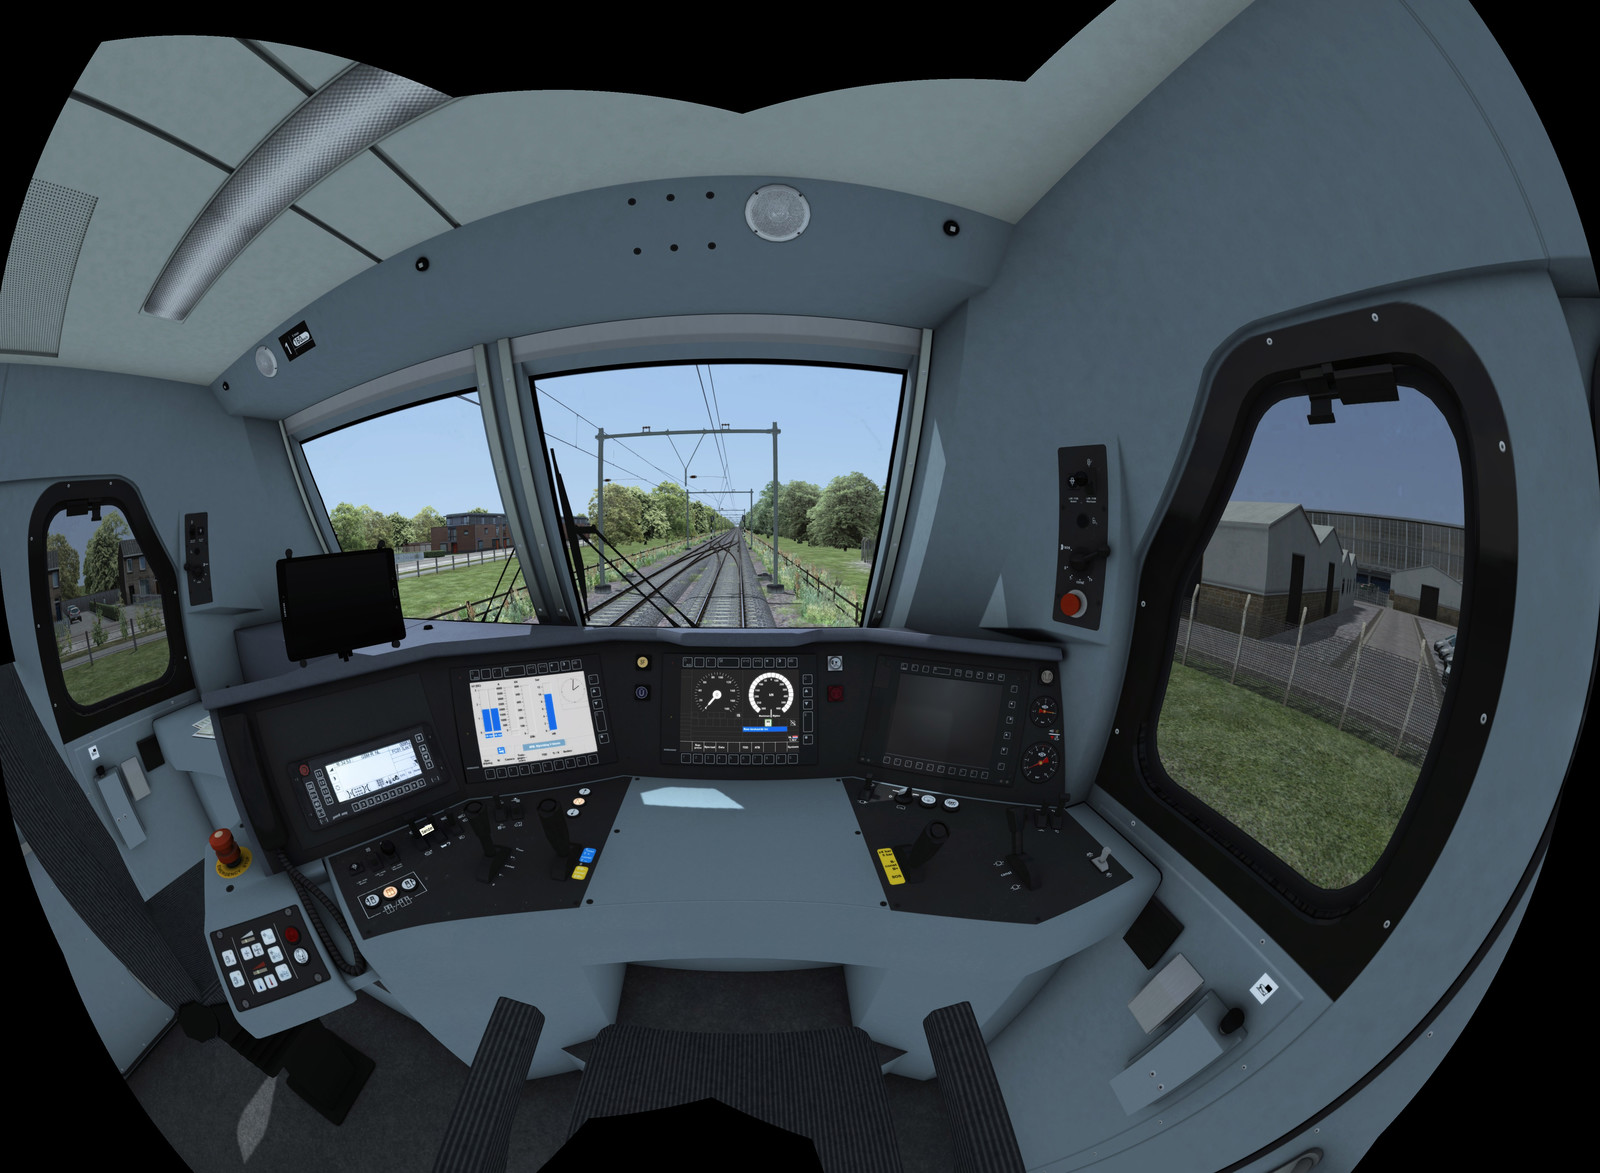 A fish-eye render of the fully modelled interior of a Traxx 186 cab. All the buttons and screens work and are hooked up to the simulation scripts.